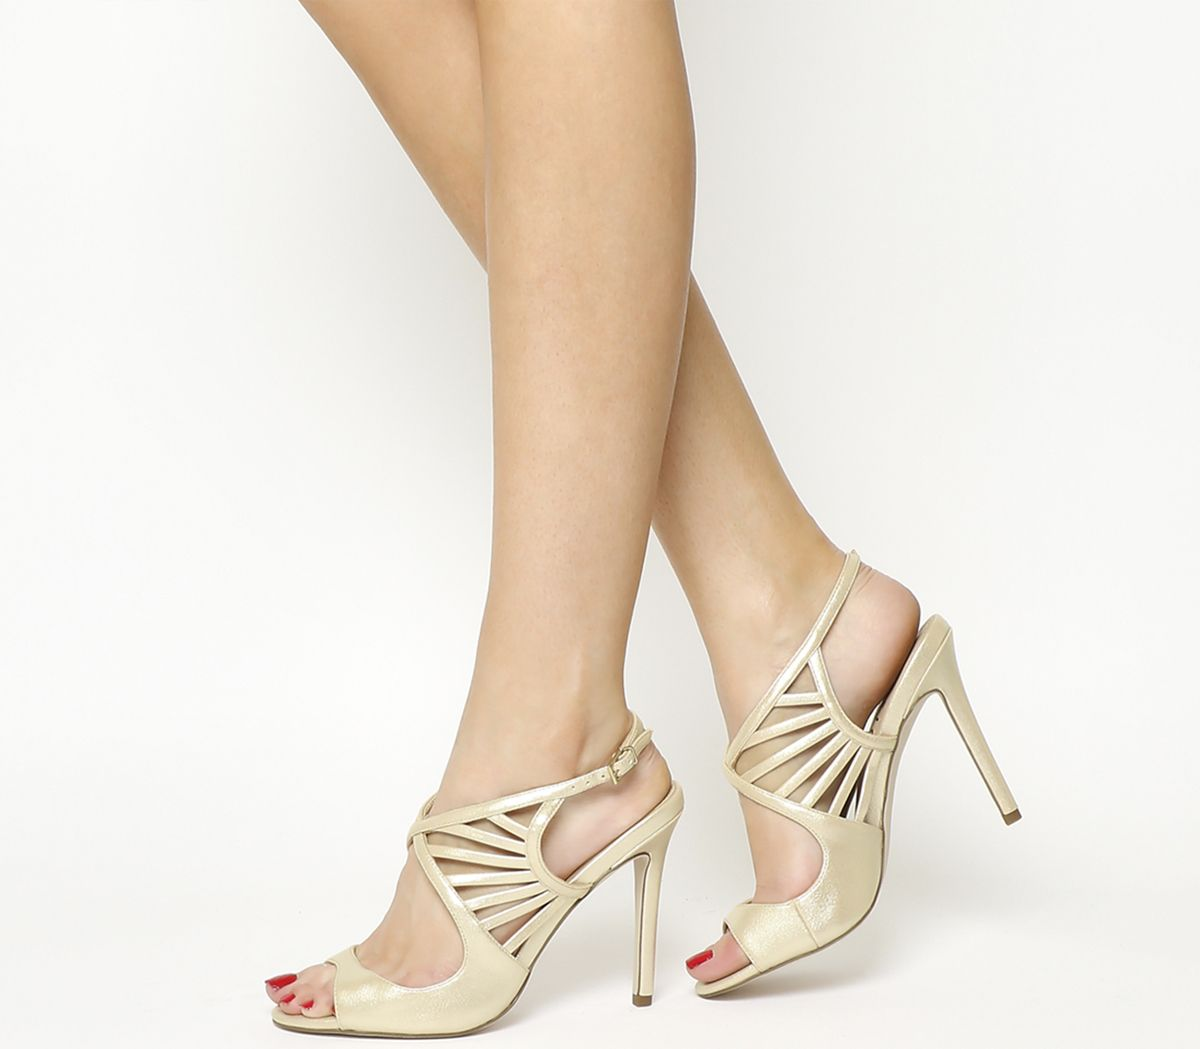 cb02f637c26 Office Hero Strappy Sandals Champagne - High Heels